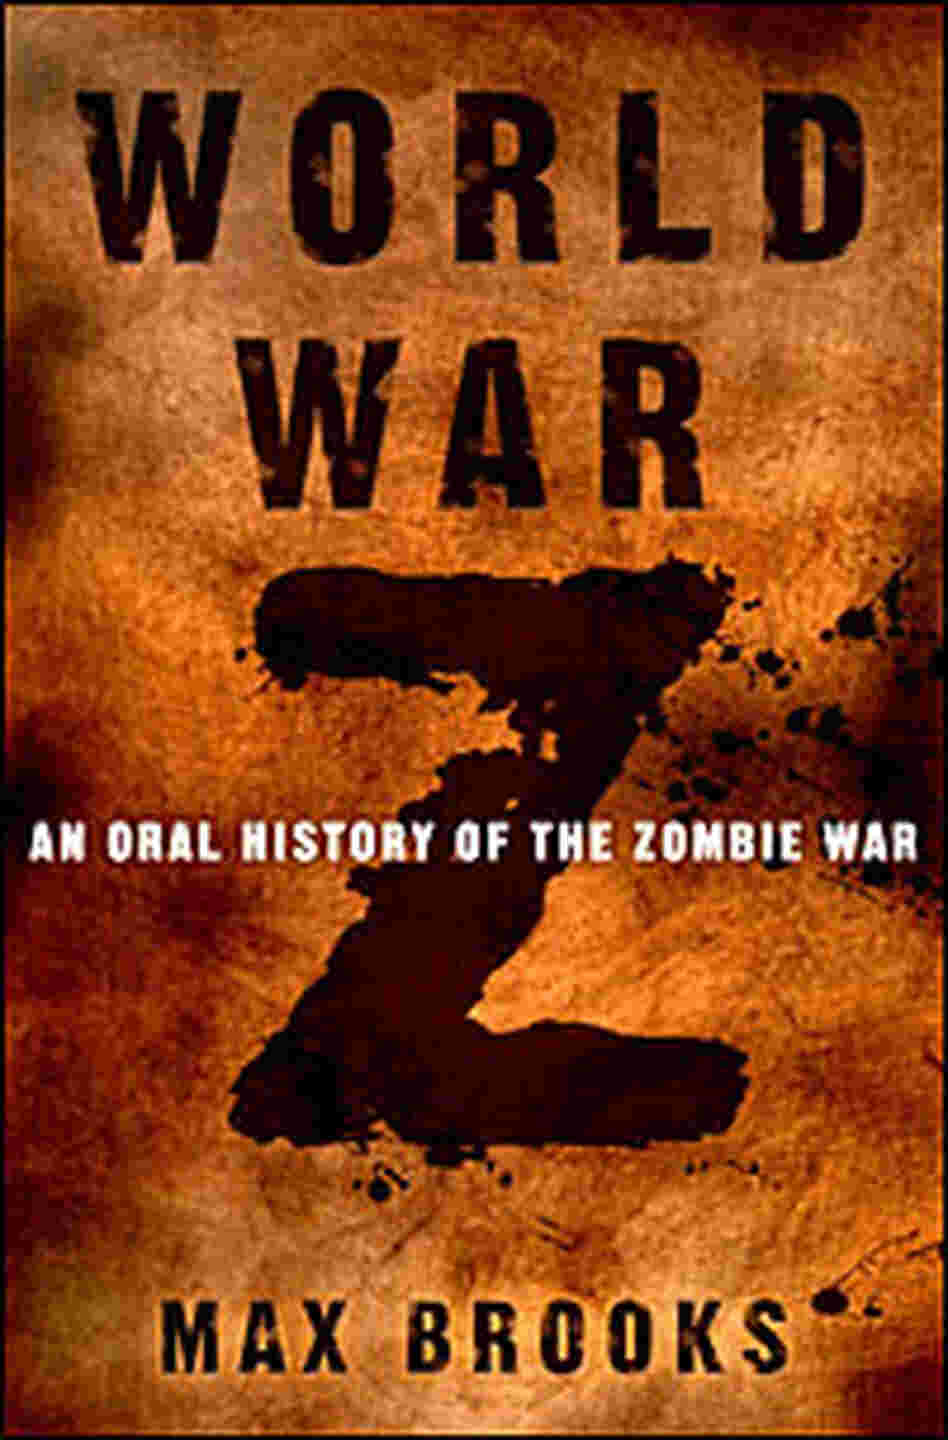 http://media.npr.org/programs/totn/features/2006/09/zombies/WorldWarZ_200-s6-c10.jpg?t=1248631307